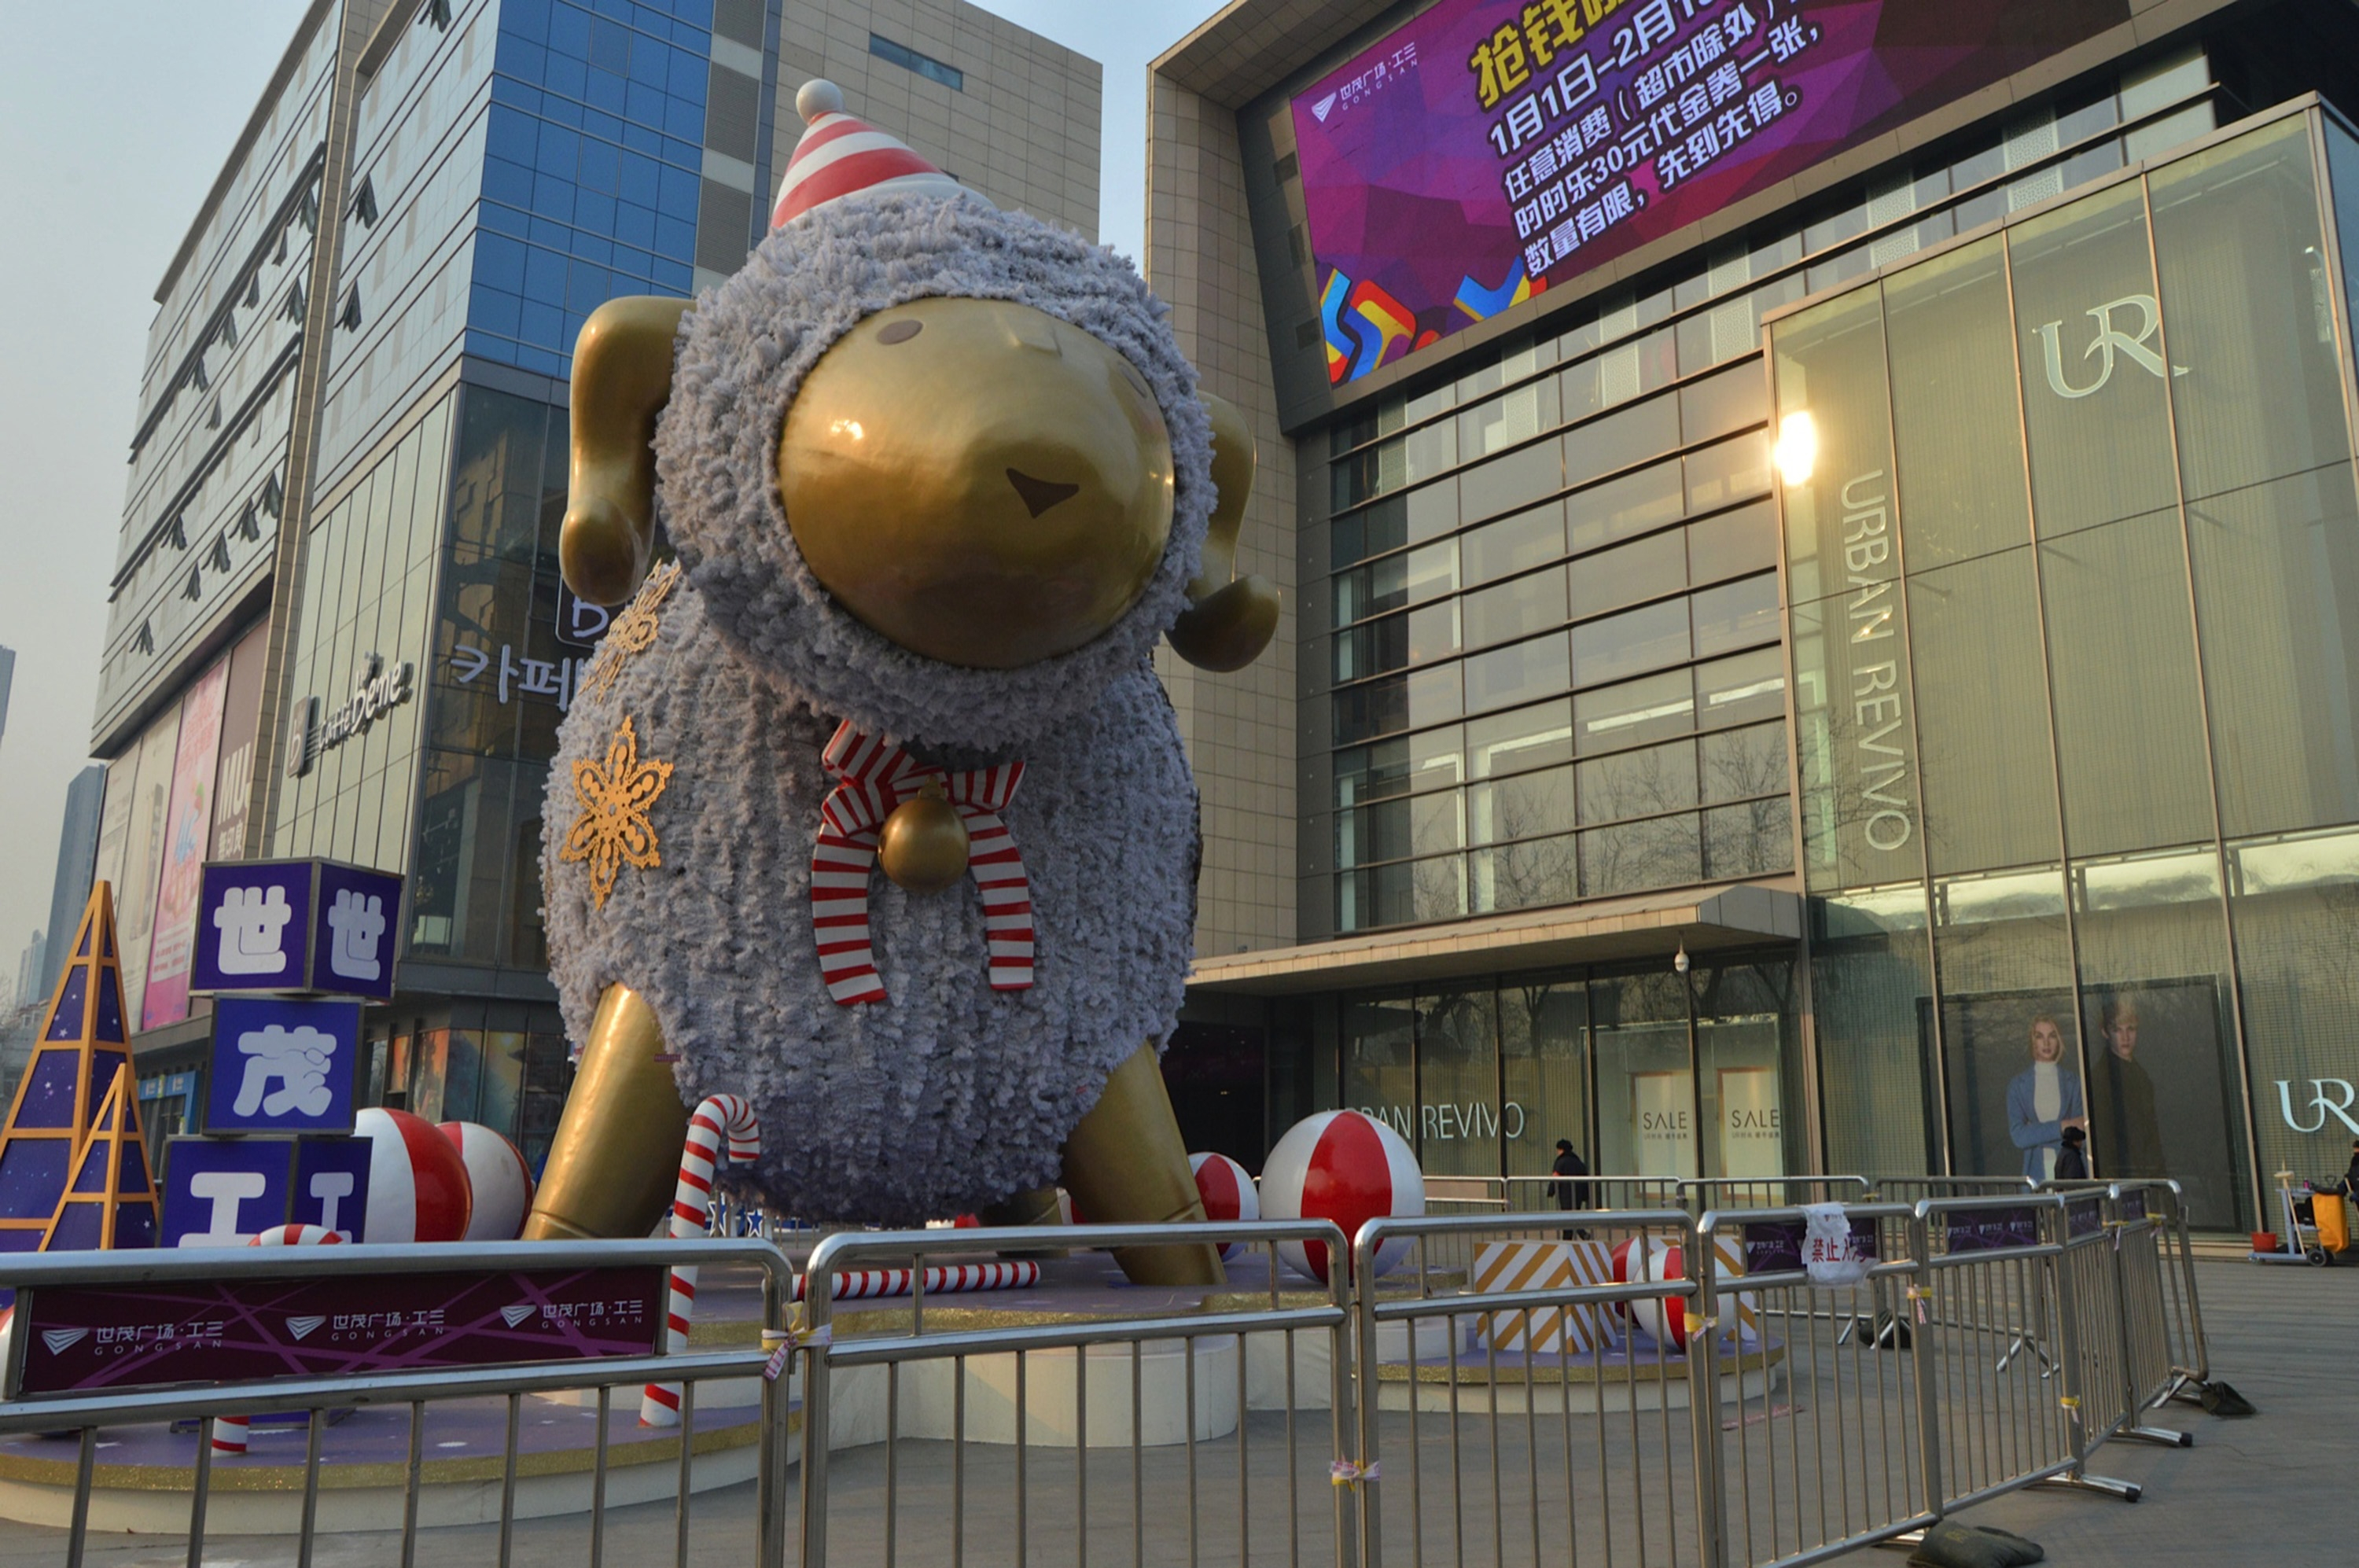 A giant sheep statue stands outside a shopping center in Beijing. China will usher in the year of the sheep on Feb. 19, and many people believe it's unlucky for a person to be born in the year of the sheep.